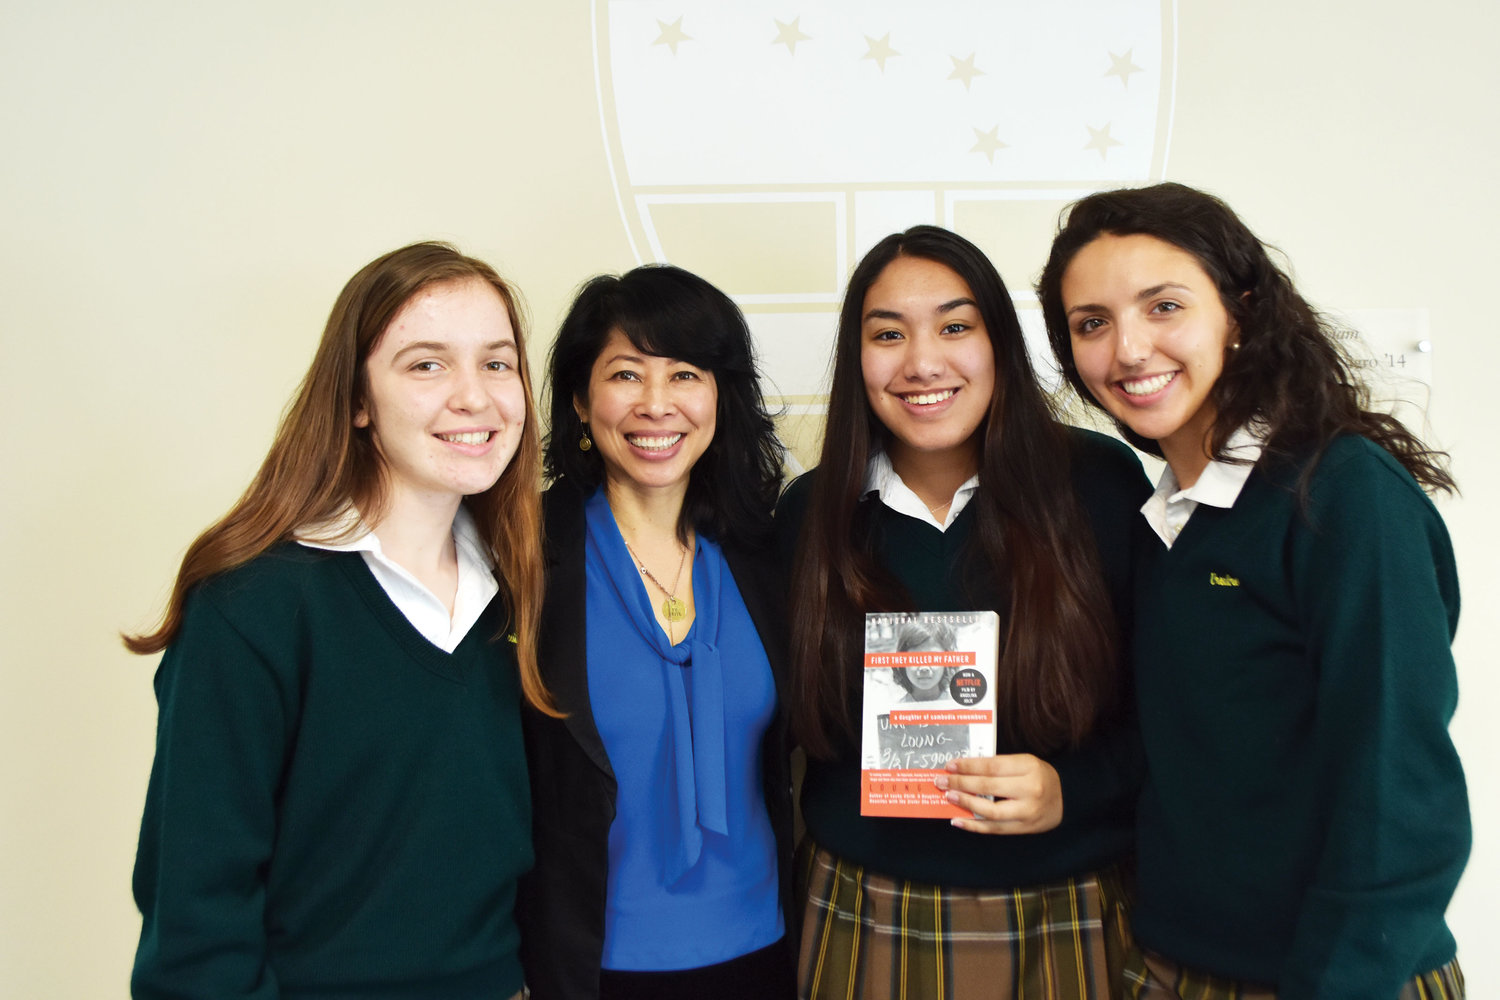 Loung Ung, second from left, meets with Ursuline School seniors Juliet Sullivan, left; Deanna Rahman, holding book; and Natalia Matar, following her inspiring speech at the sixth annual Global Education and Serviam Symposium at the New Rochelle school March 14. The three students are taking the school's global scholars seminar and are the managing editors of the school newspaper, Unison.